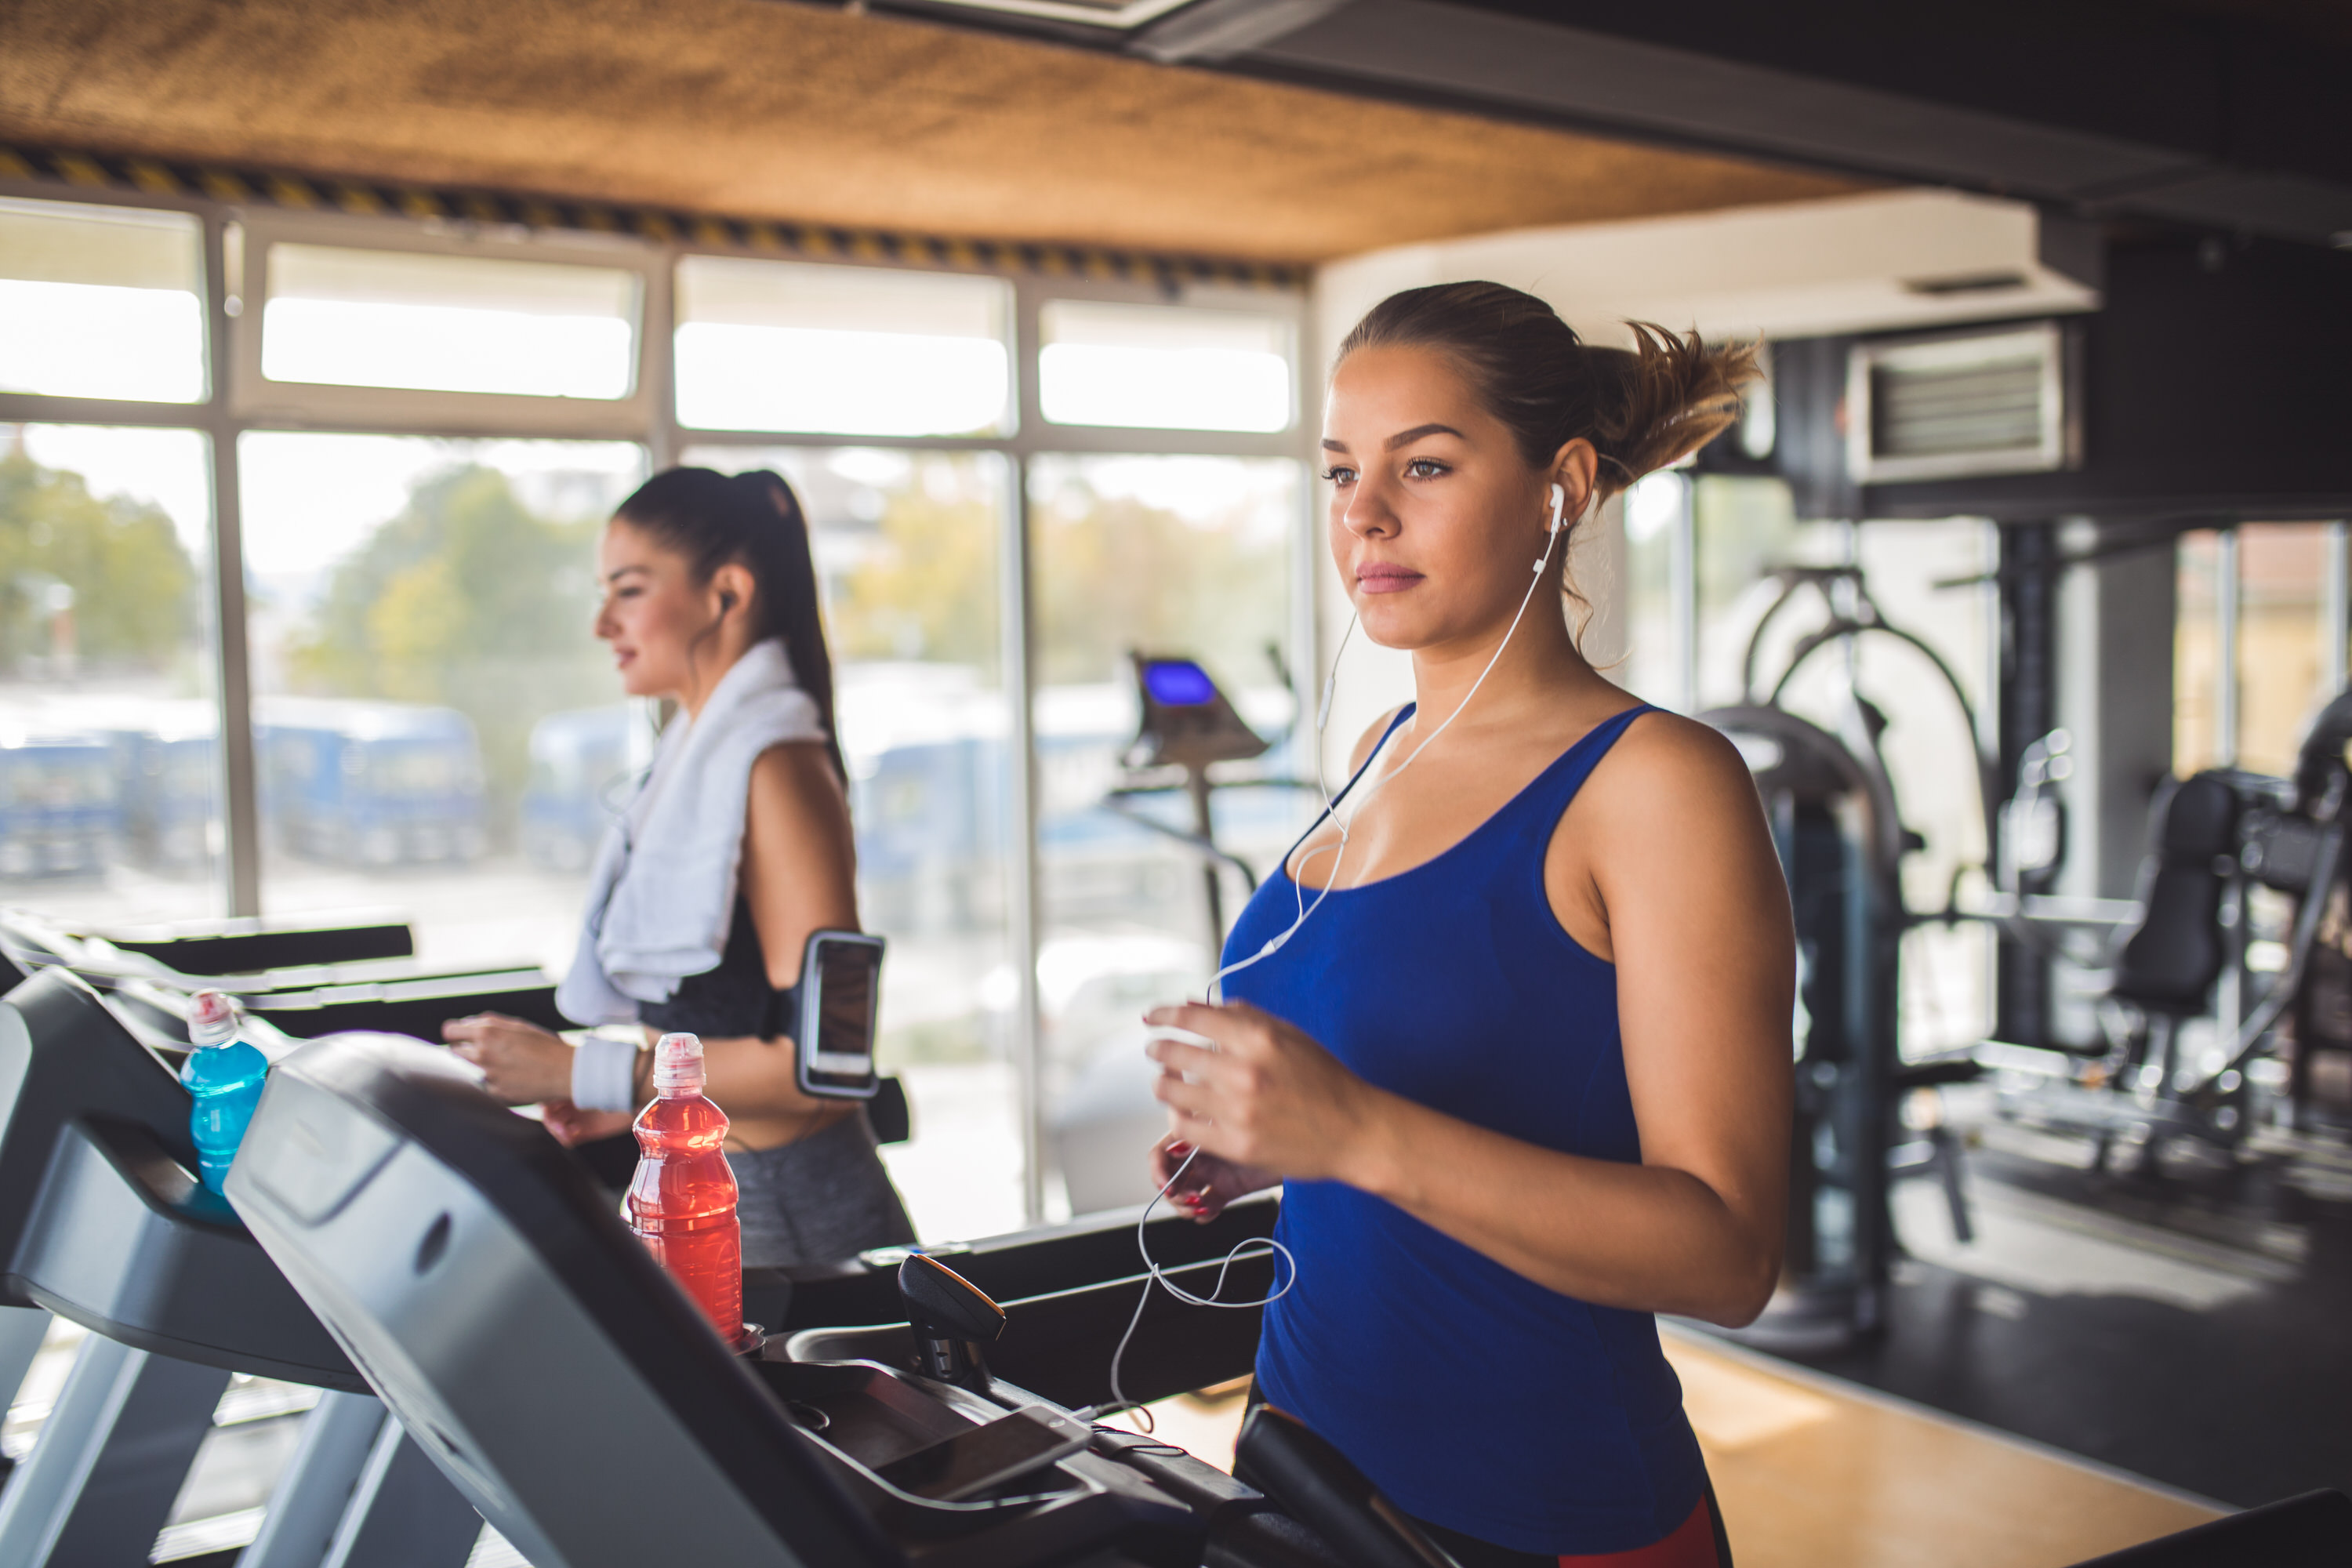 Image of young woman running on treadmill at the gym.